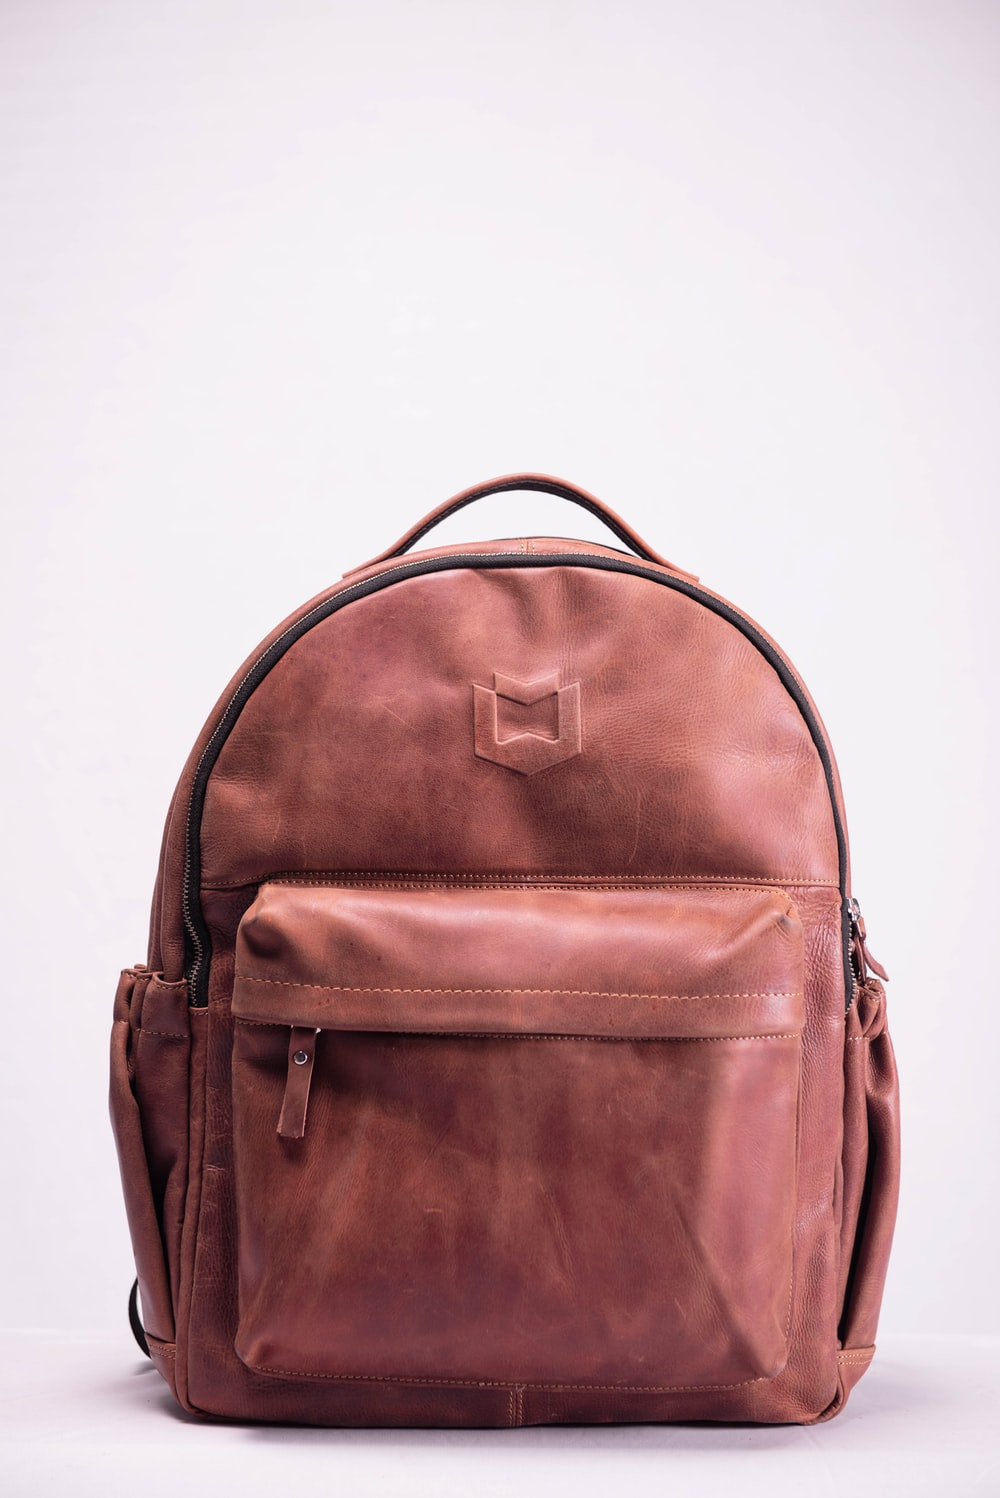 brown leather backpack on white surface